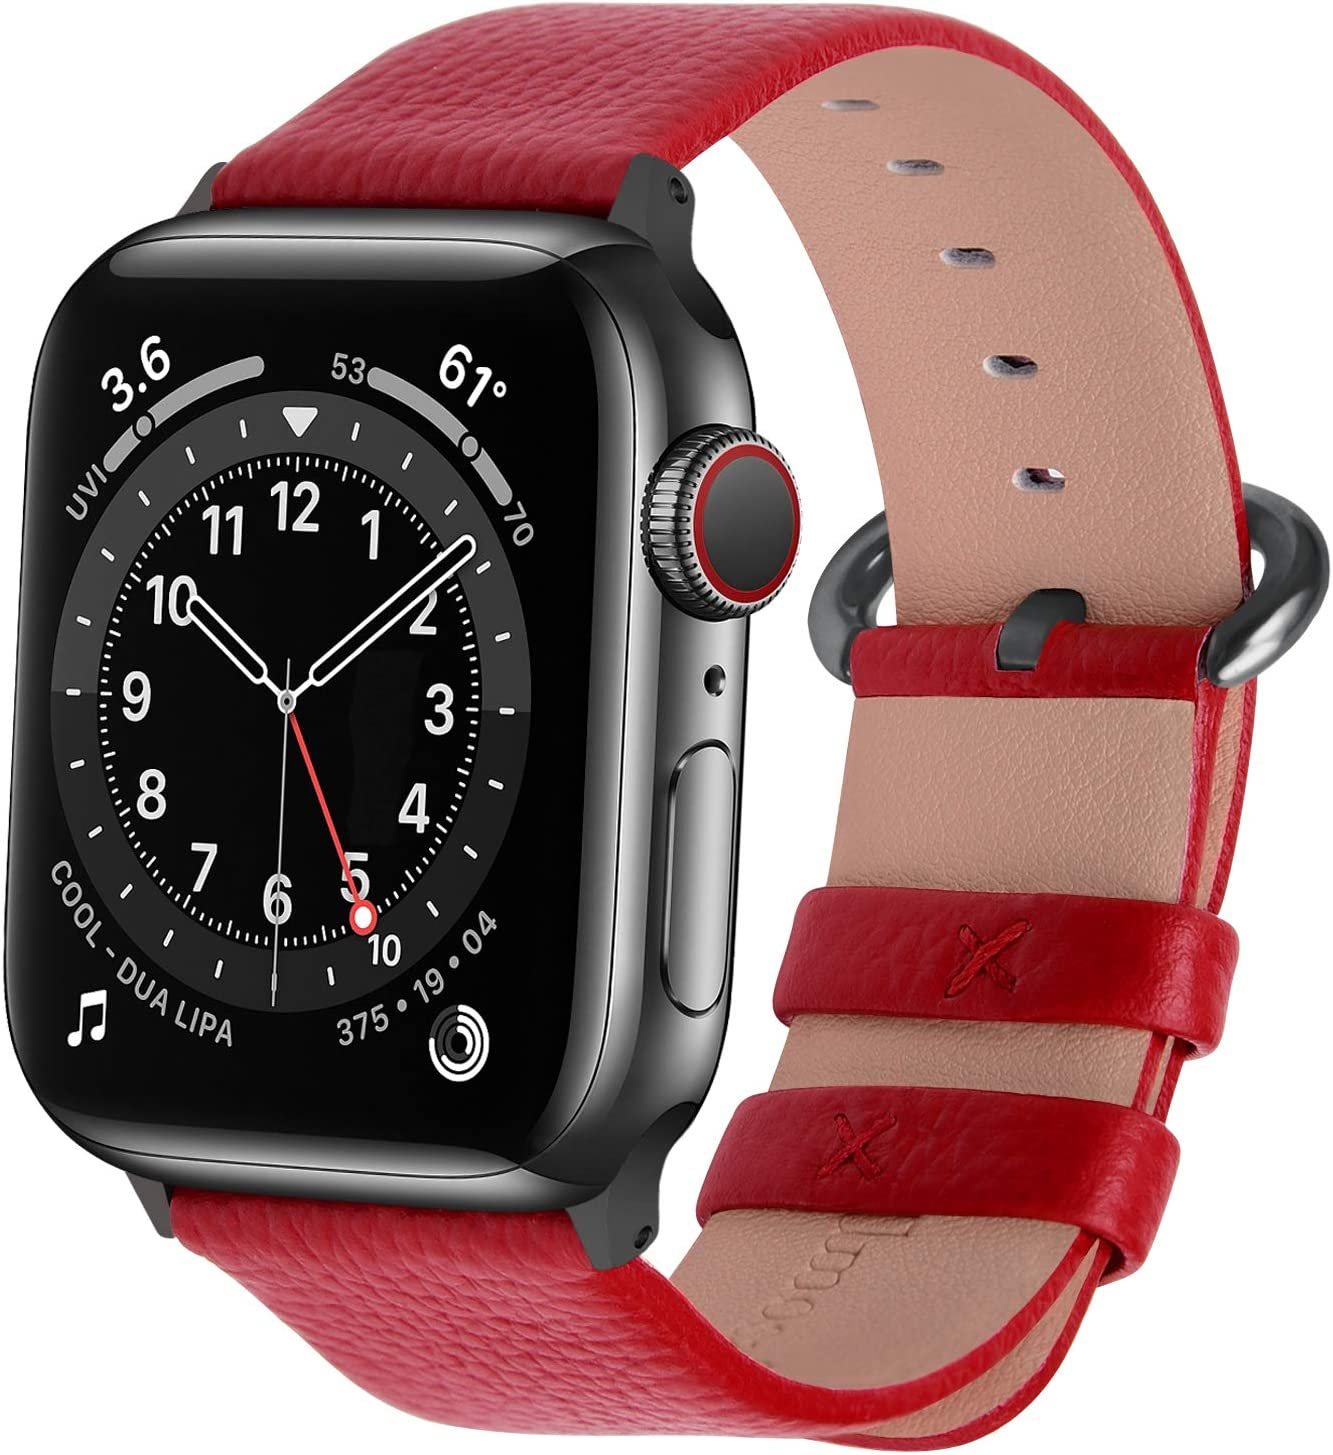 Fullmosa Compatible Apple Watch Band 38mm 40mm 42mm 44mm Leather Compatible iWatch Band/Strap Compatible Apple Watch SE & Series 6 5 4 3 2 1, 38mm 40mm Red + Smoky Grey Buckle